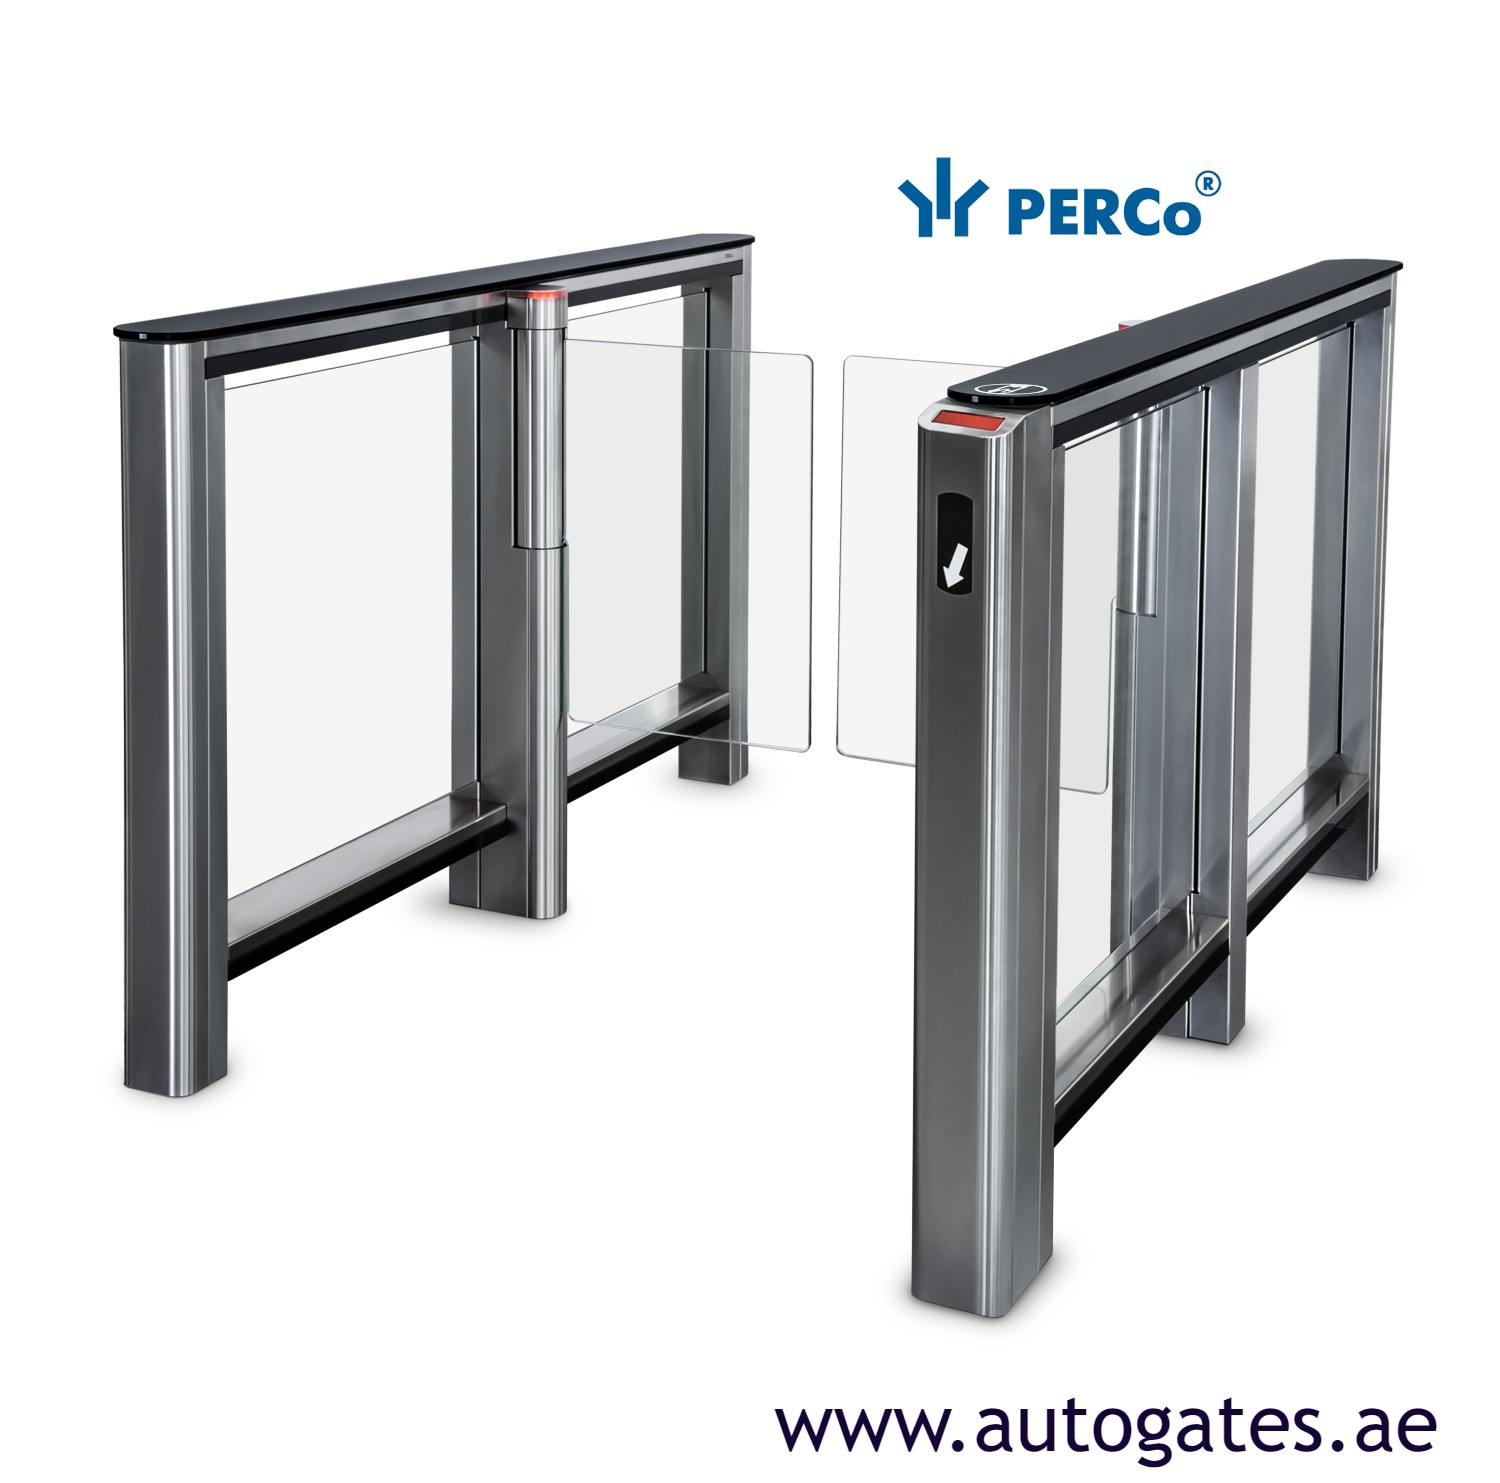 Perco speed gate Suppliers in dubai | Perco barcode gates dubai | made in Russia